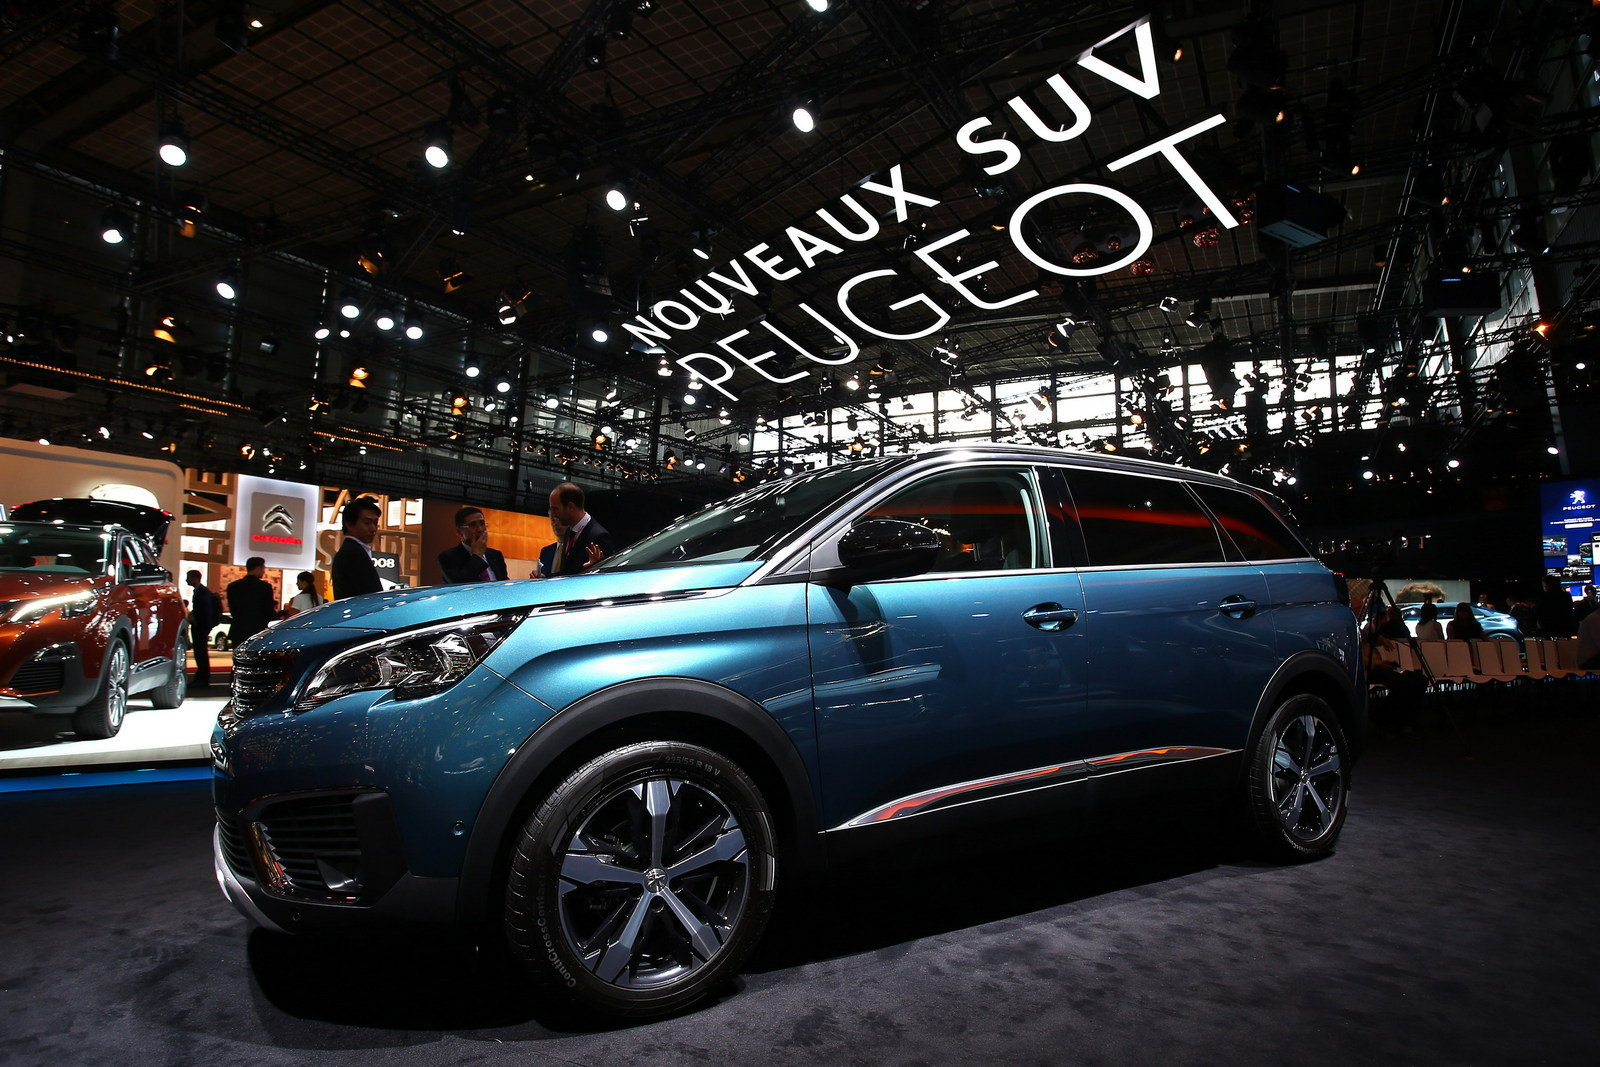 2017 peugeot 5008 picture 690519 car review top speed. Black Bedroom Furniture Sets. Home Design Ideas